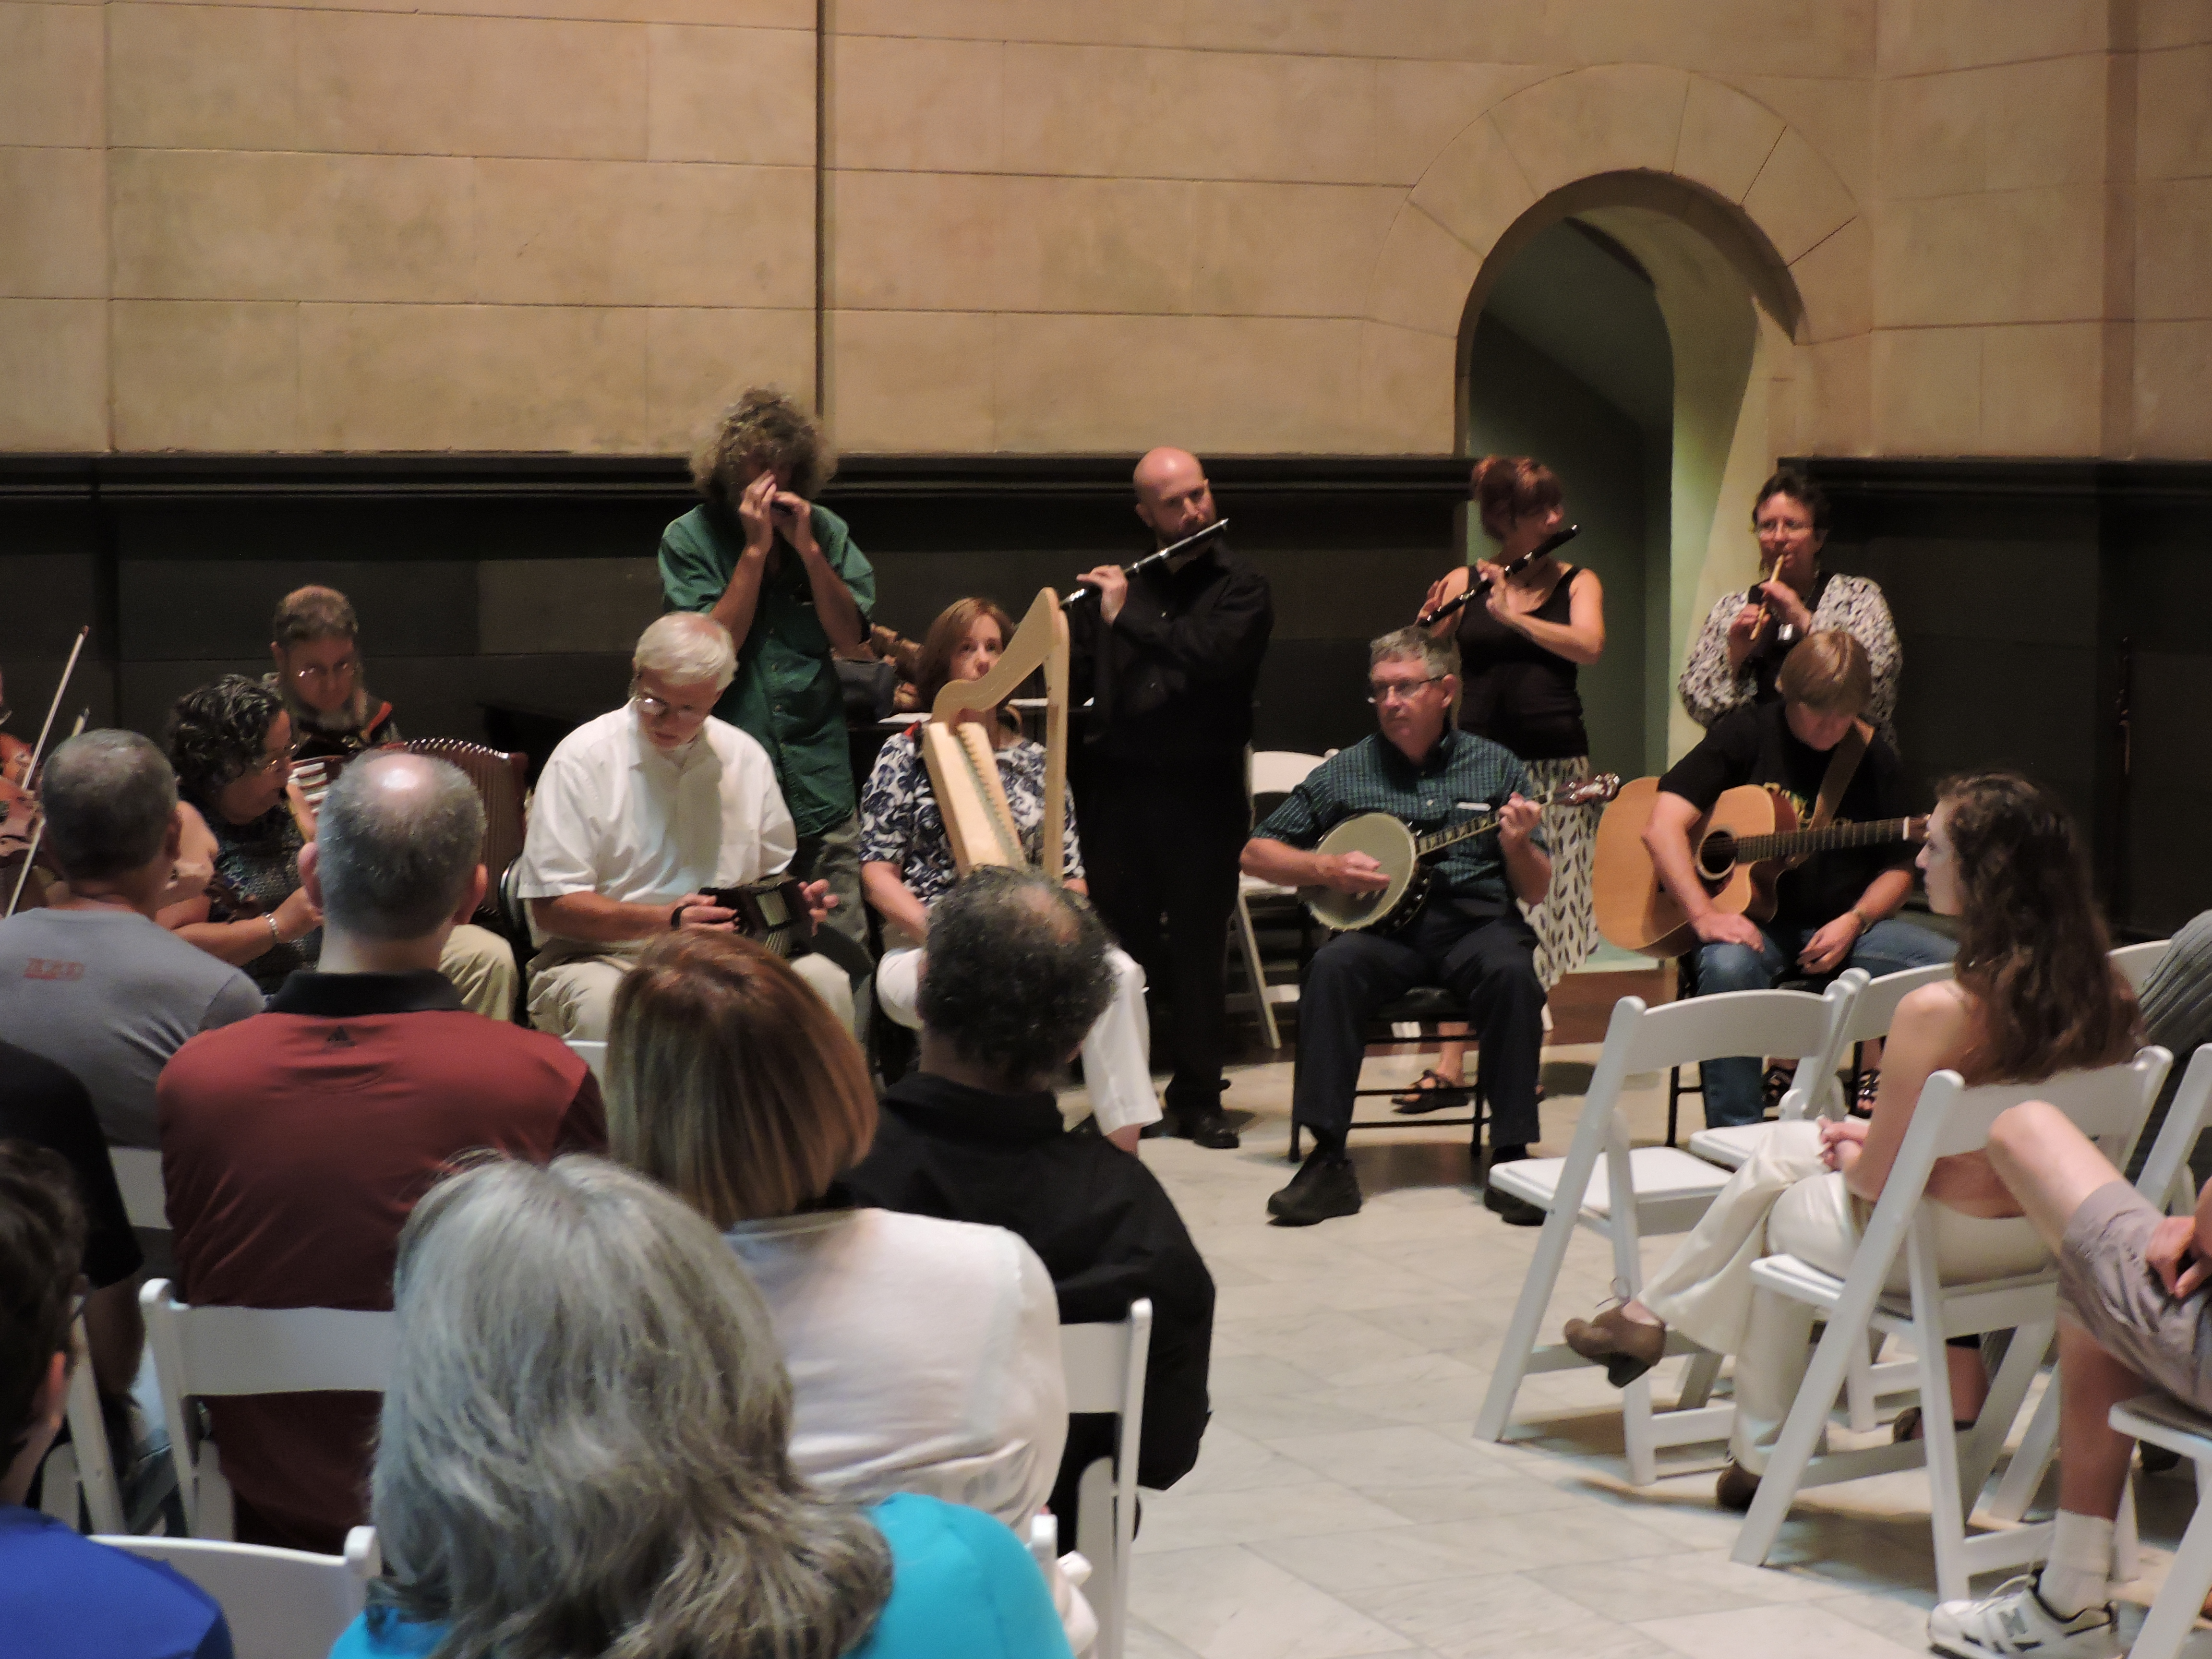 Chamberpalooza, with the Chamber Music Network of Greater Cincinnati